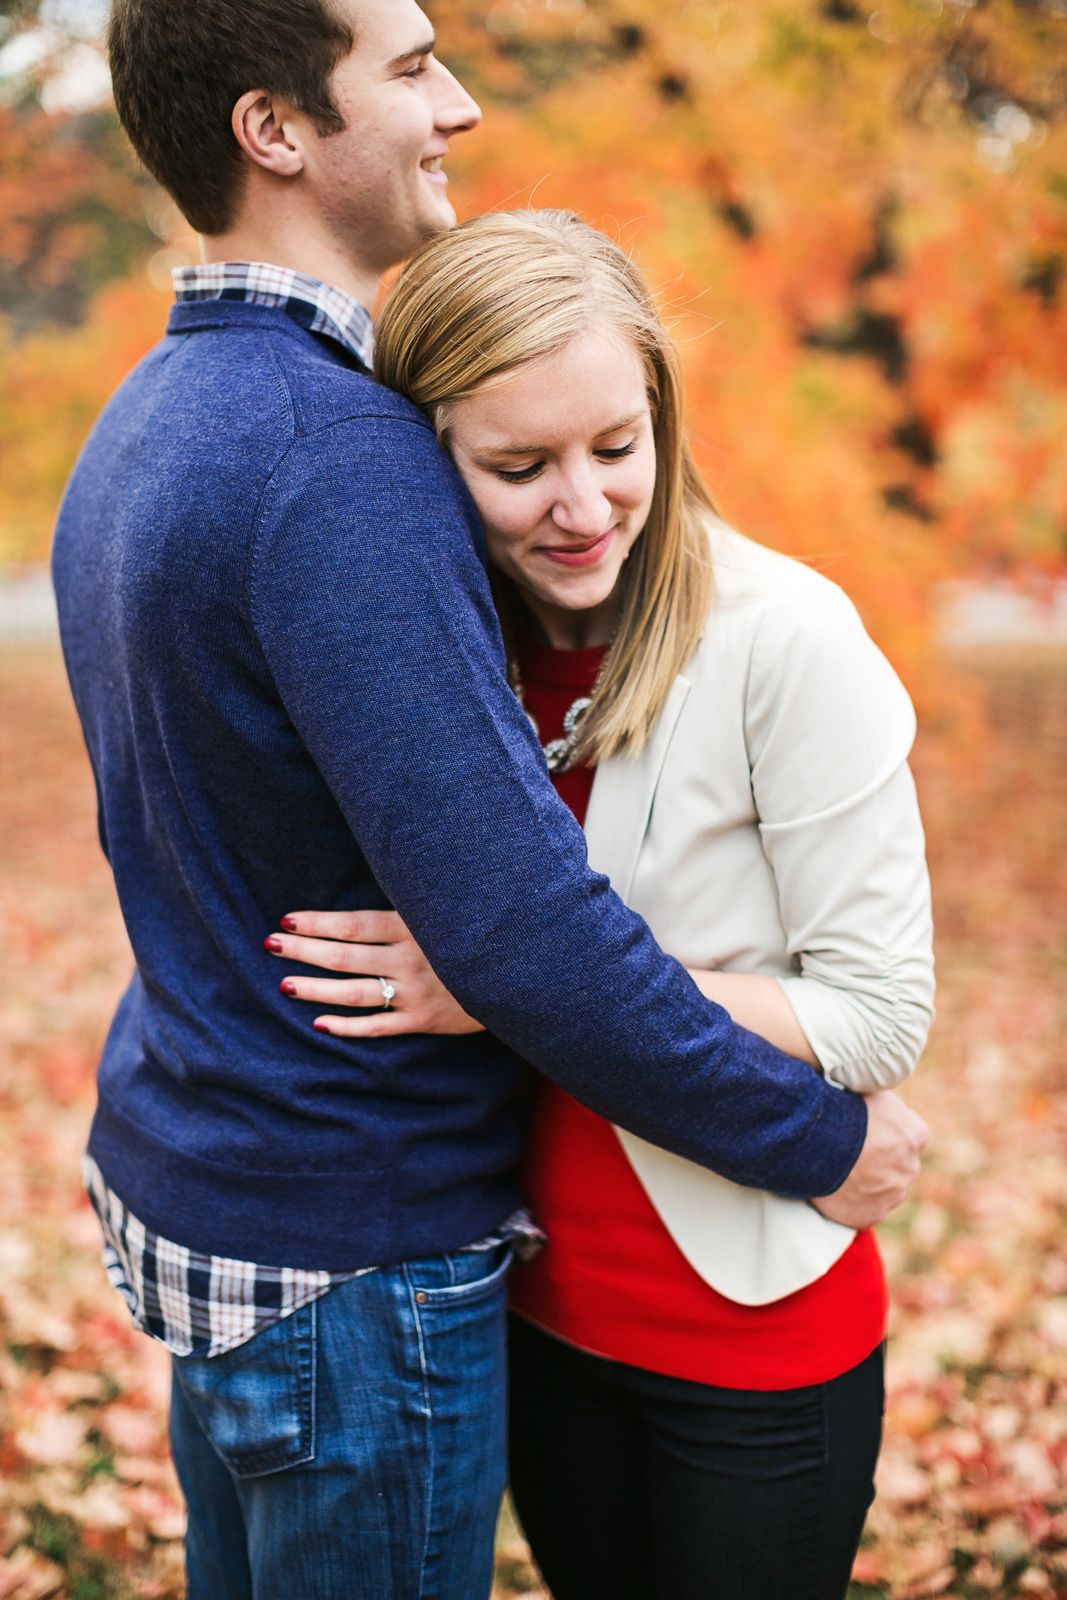 Oldani Photography St Louis Lafayette Square Park Engagement_20141102_165433-2.jpg